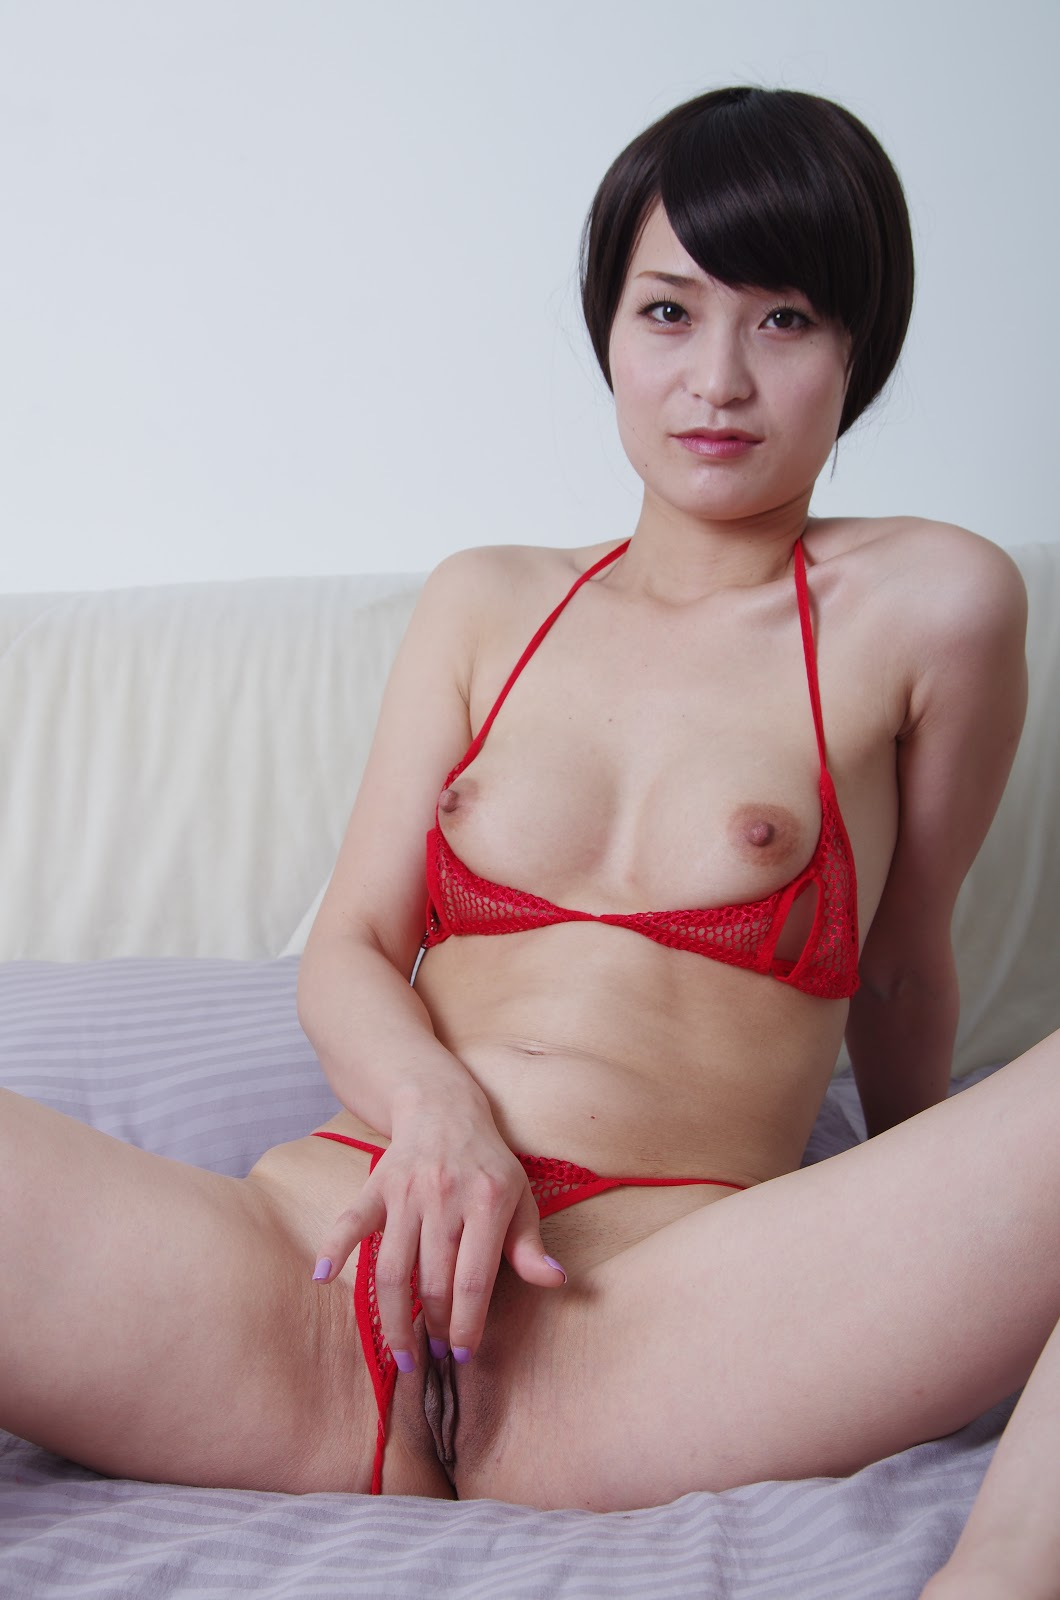 Chinese Nude_Art_Photos_-_298_-_YueYue.rar - Girlsdelta